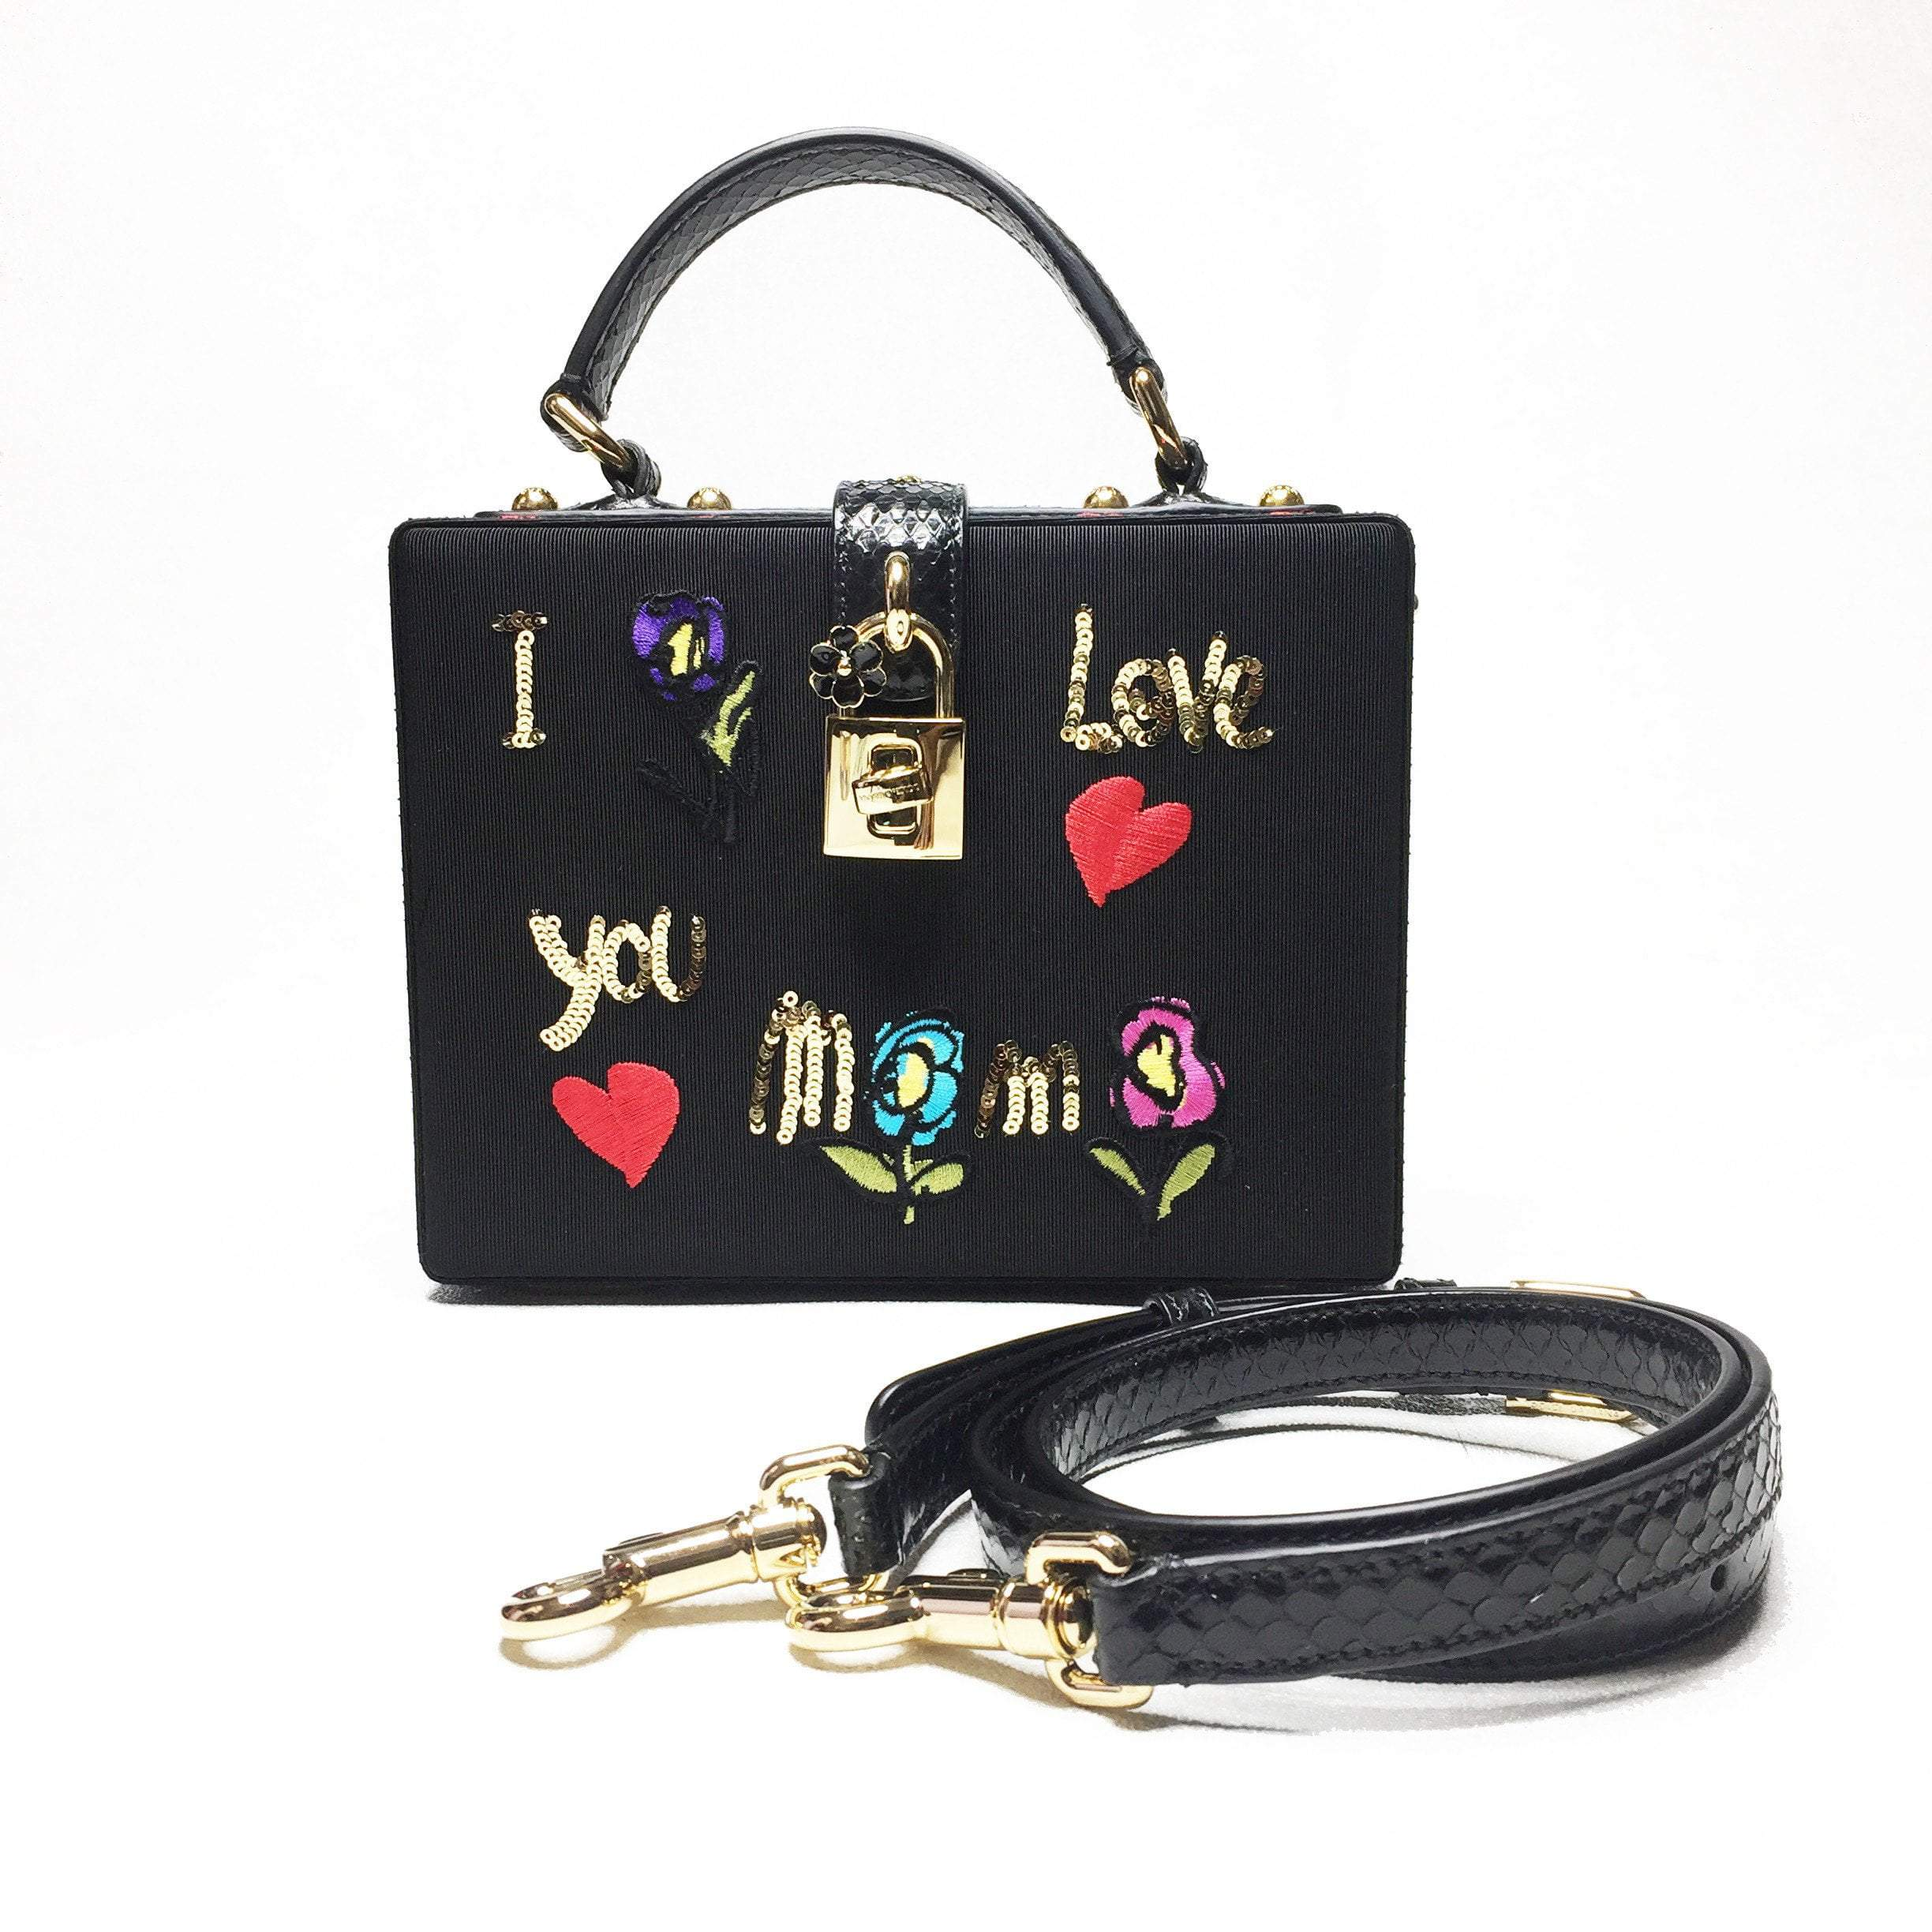 Dolce & Gabbana Box Embroidered Mamma Bag